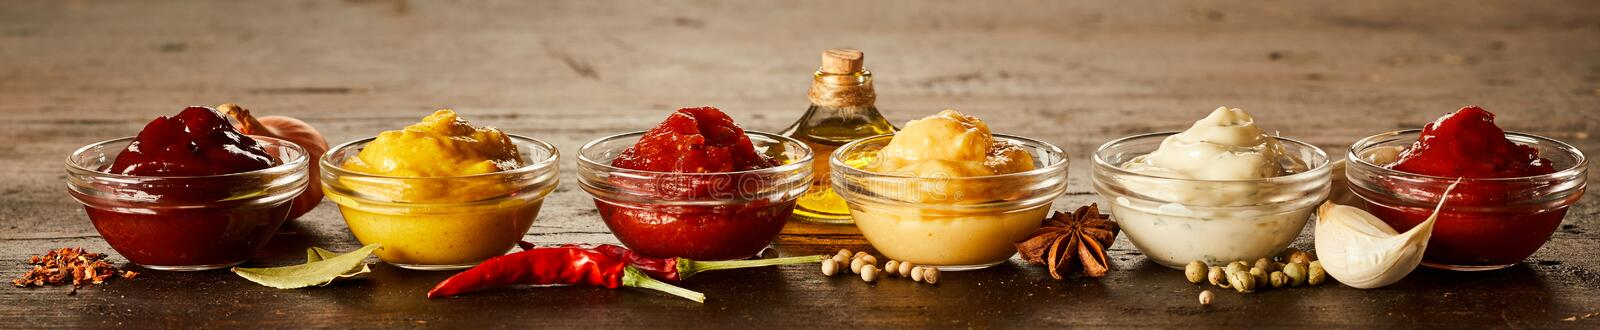 Rustic panorama banner with sauces and marinades. Rustic panorama banner with assorted small glass bowls of sauces and marinades together with spices and royalty free stock images